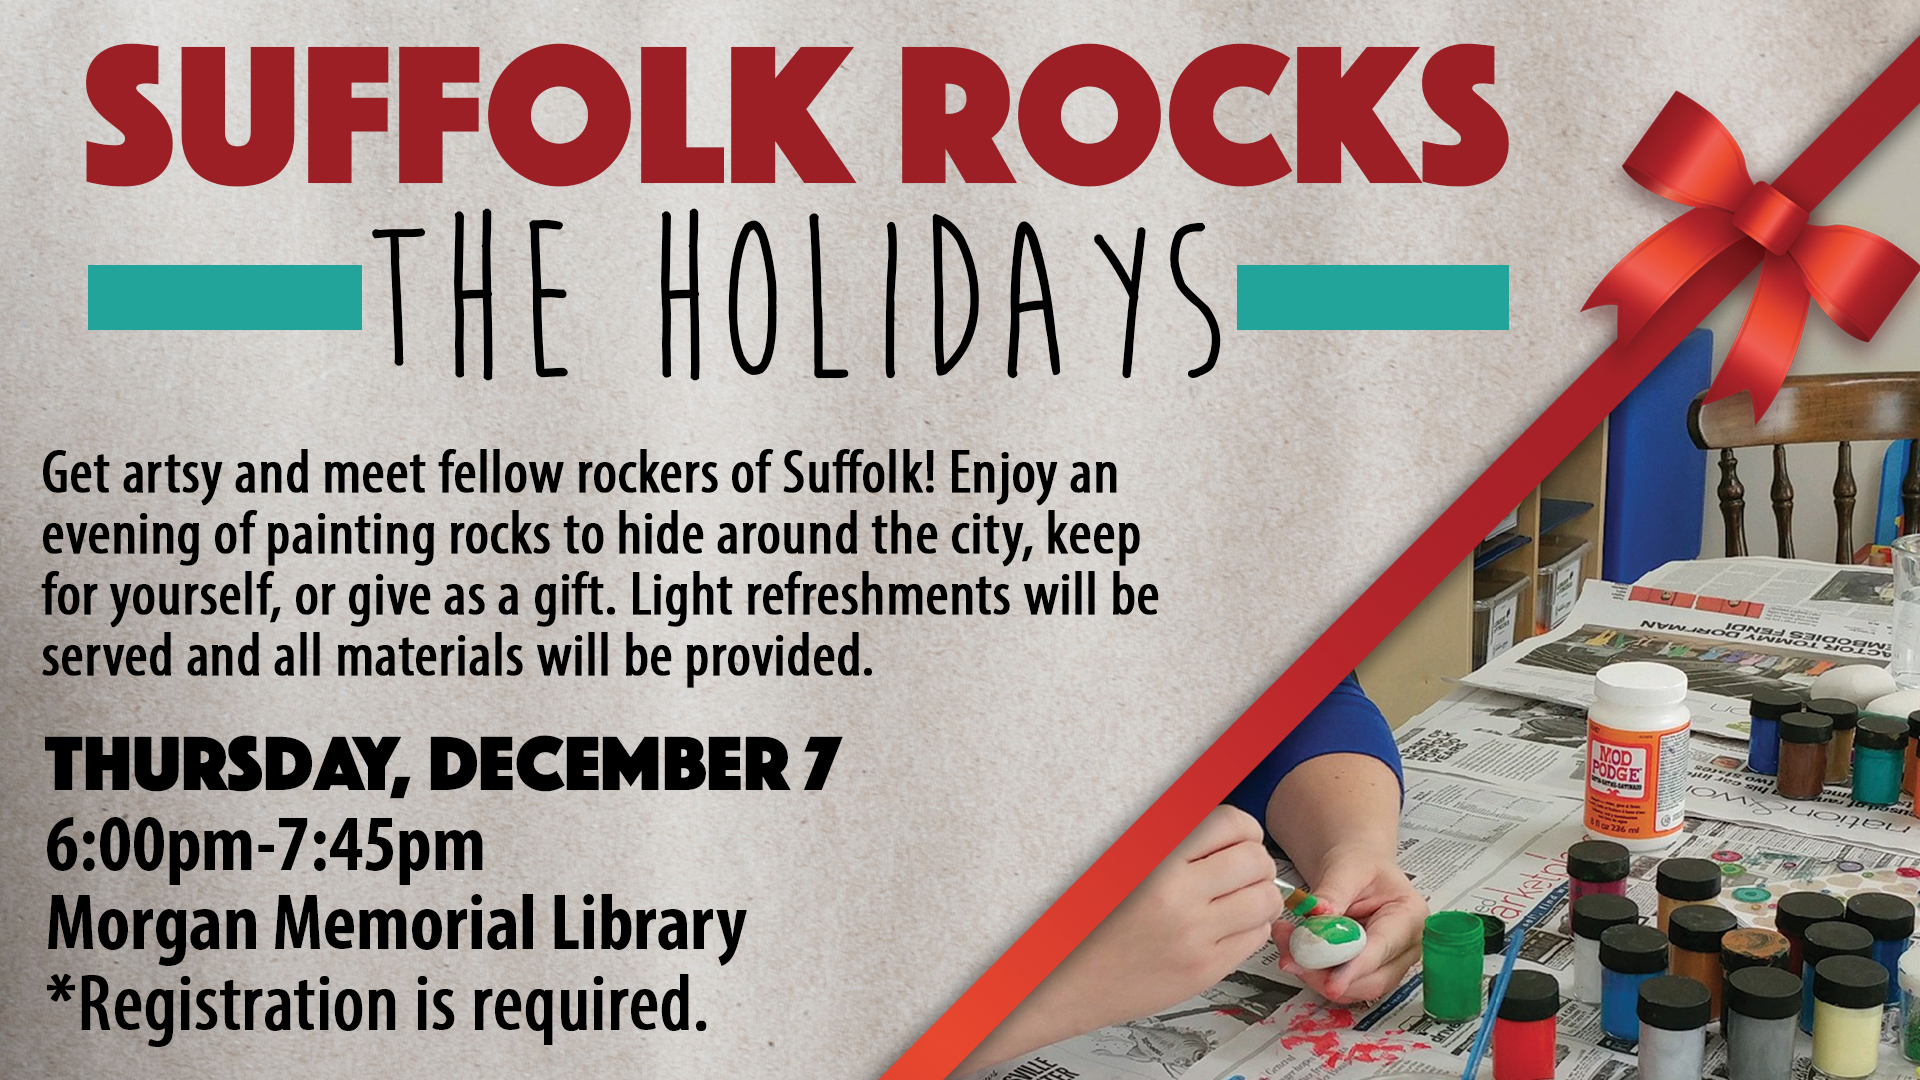 Suffolk Rocks the Holidays!